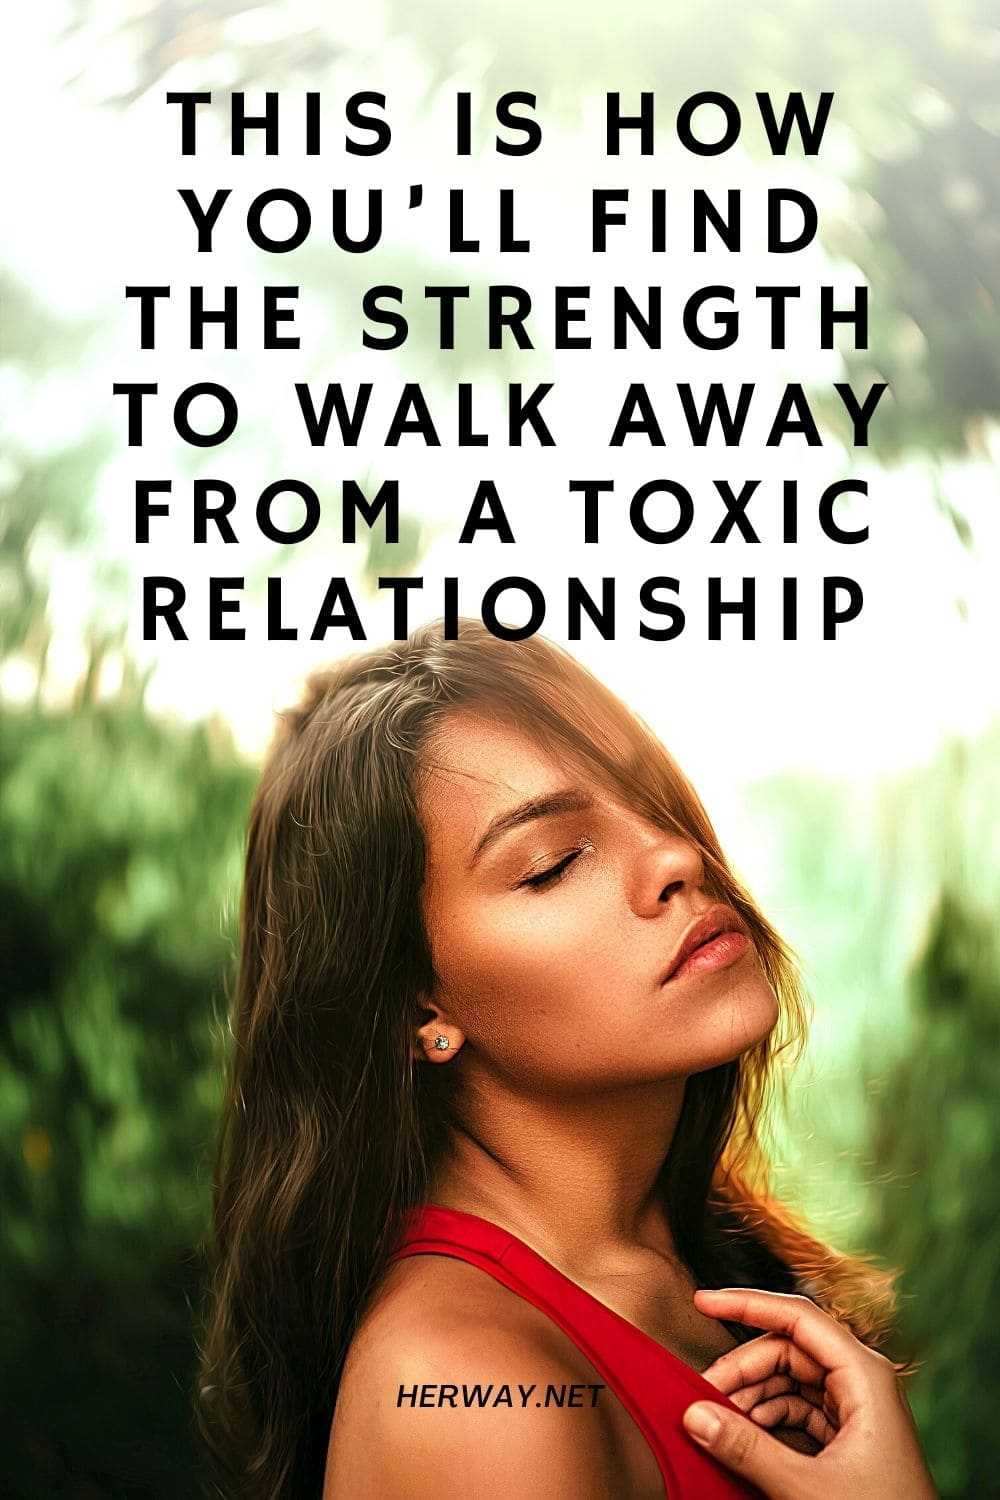 This Is How You'll Find The Strength To Walk Away From A Toxic Relationship